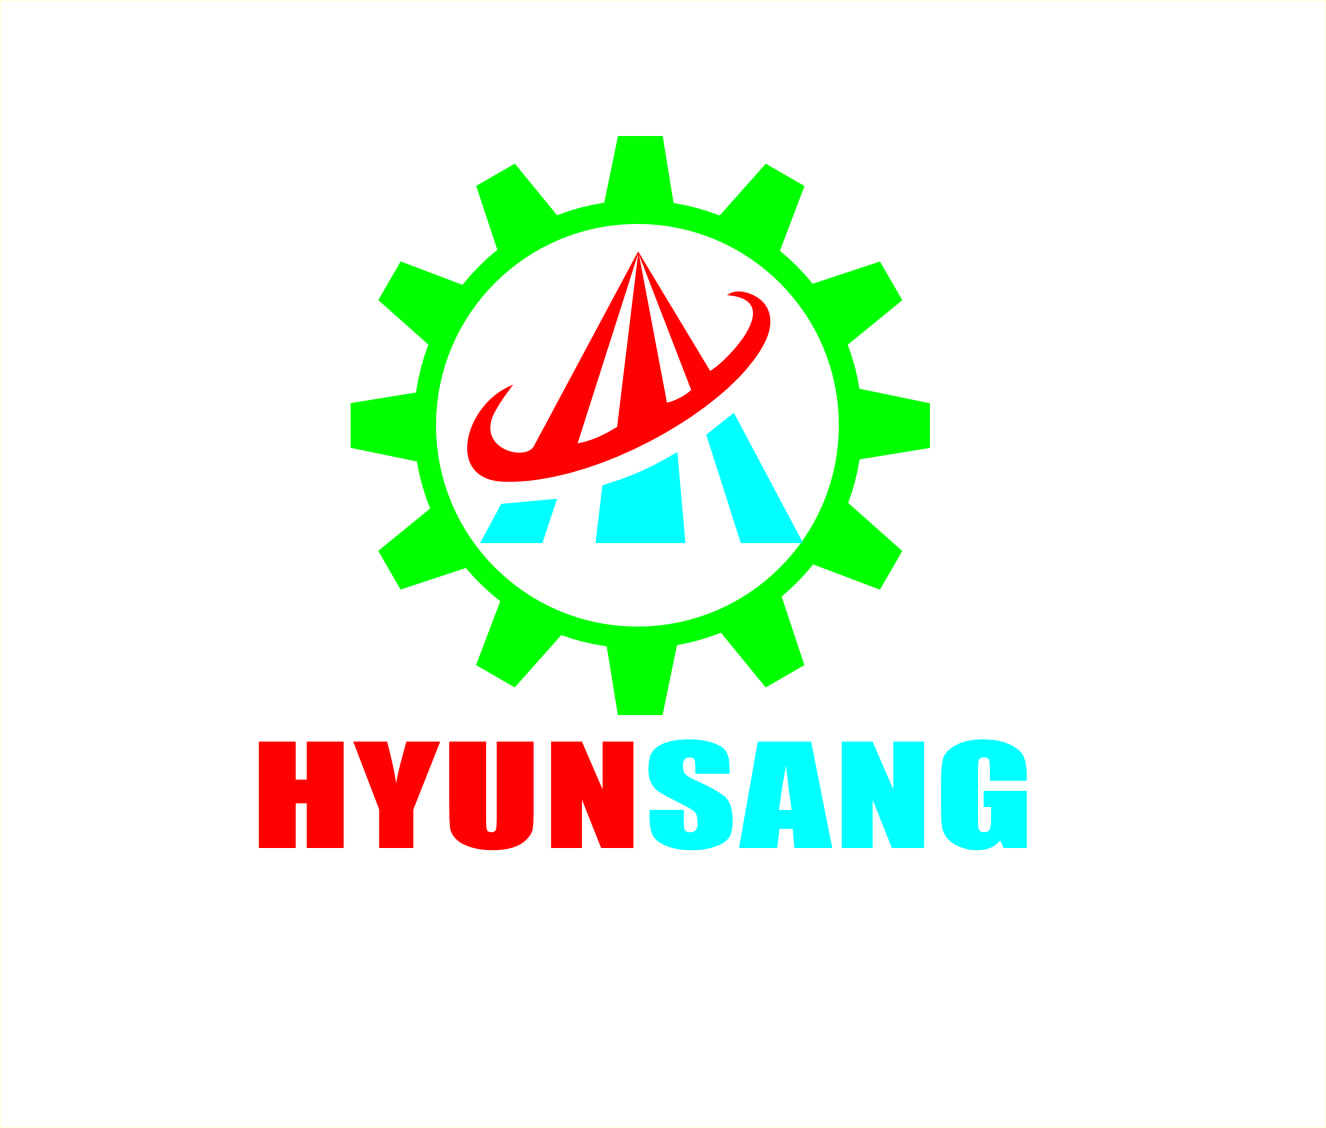 Guangzhou Hyunsang Machinery Co., Ltd. logo